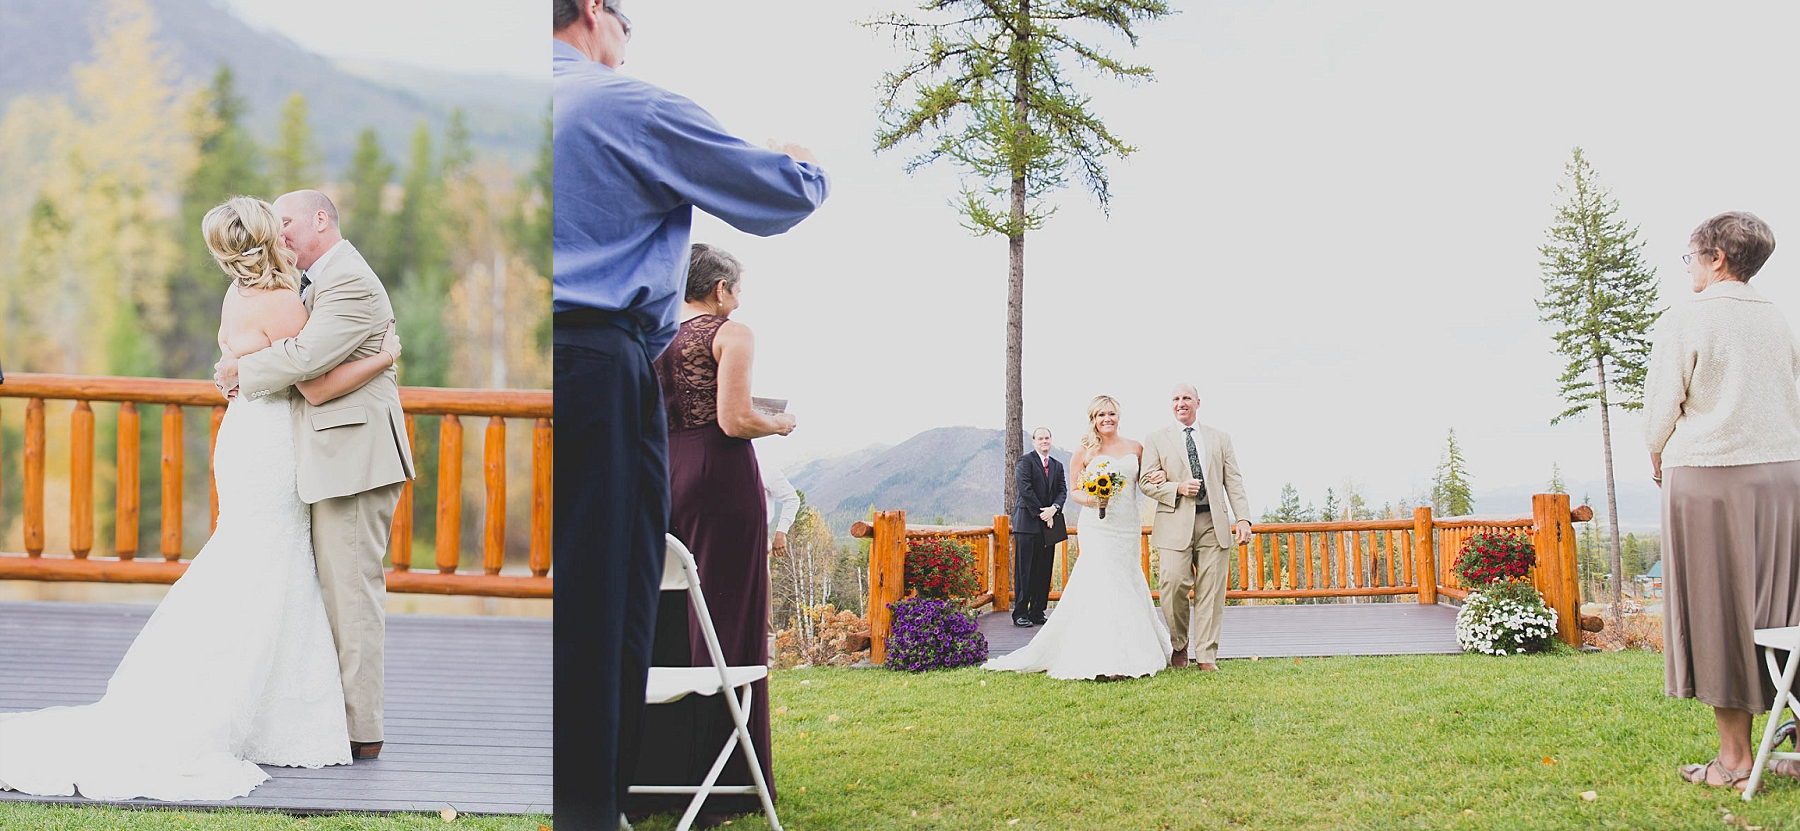 Jennifer_Mooney_photo_glacier_outdoor_center_wedding_montana_fall_elegant_rustic_romantic-82.jpg